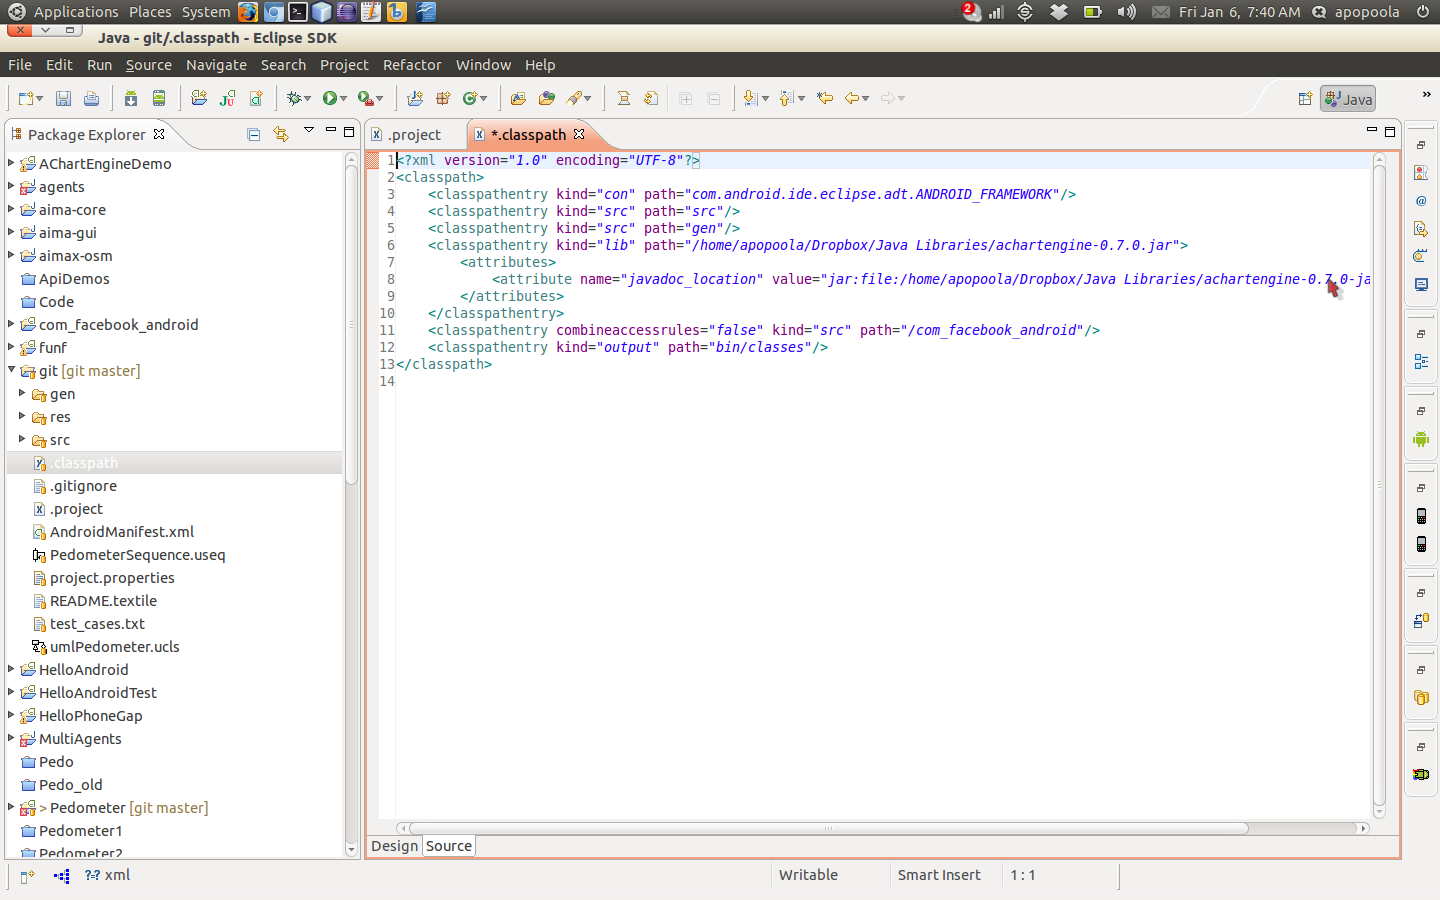 And the classpath too...